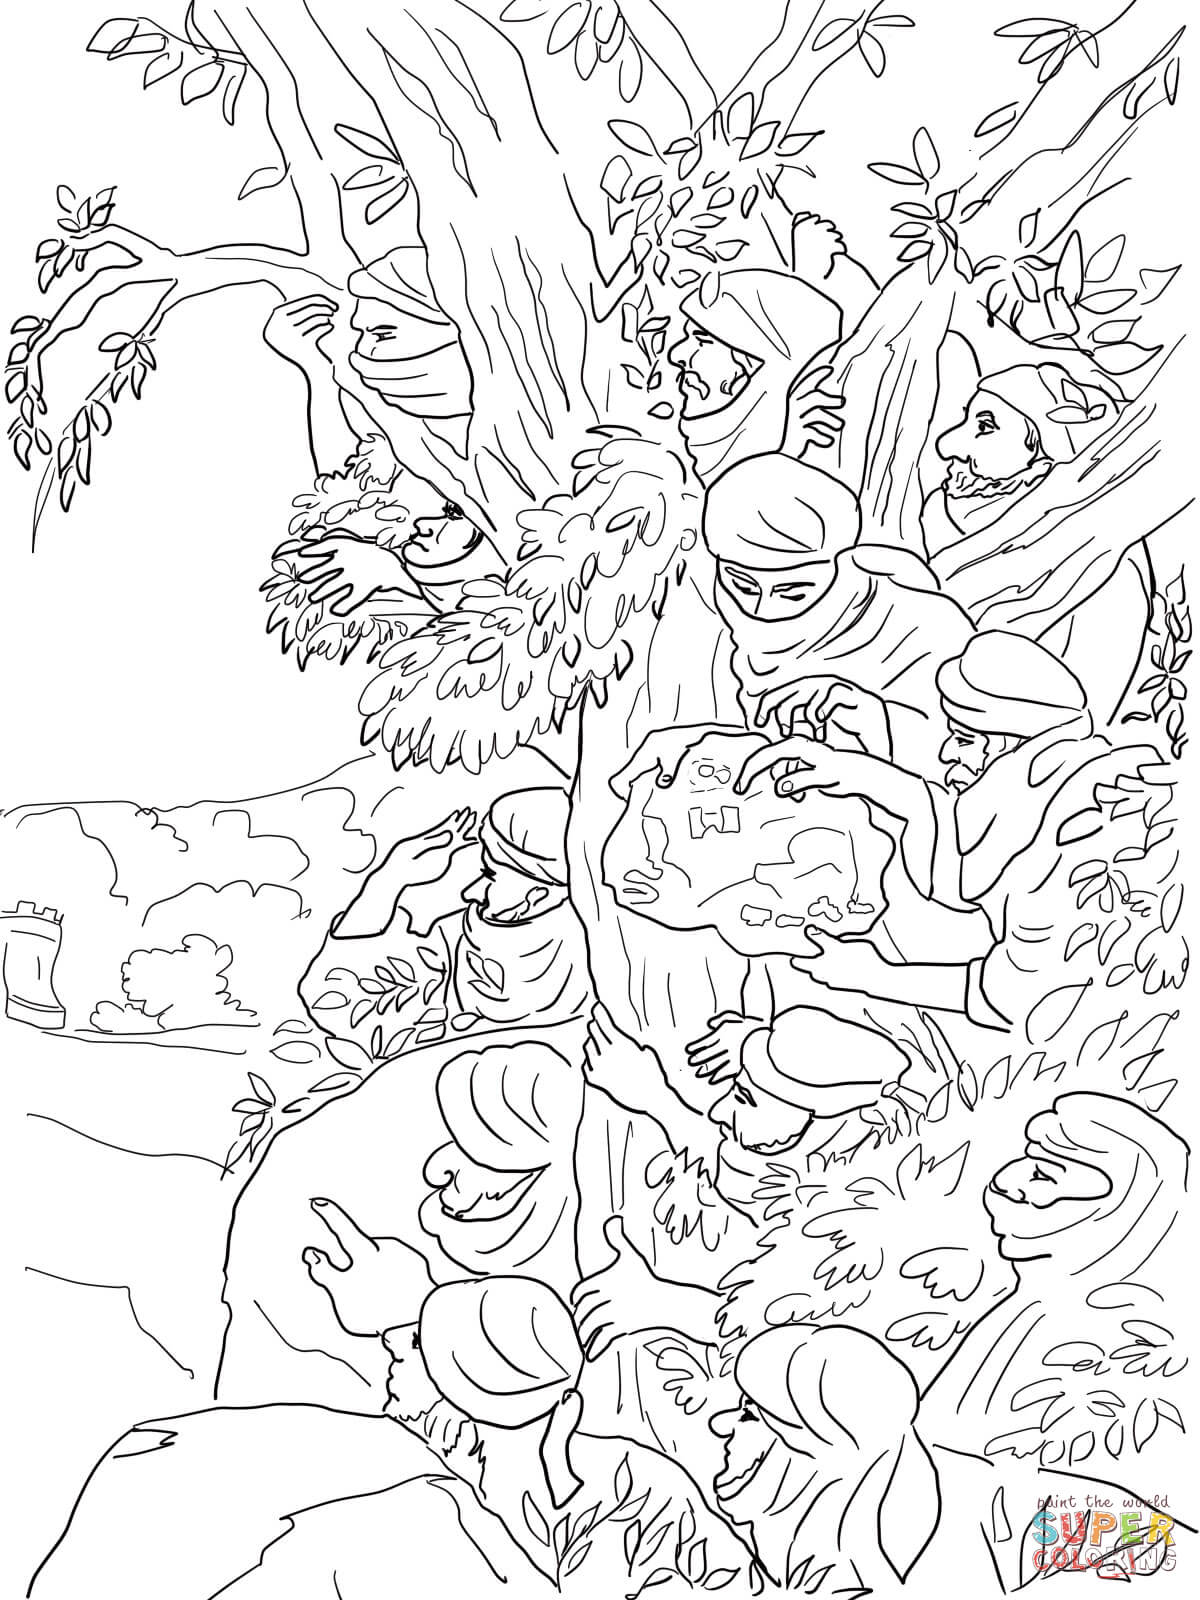 12 Spies Sent To Canaan Coloring Page